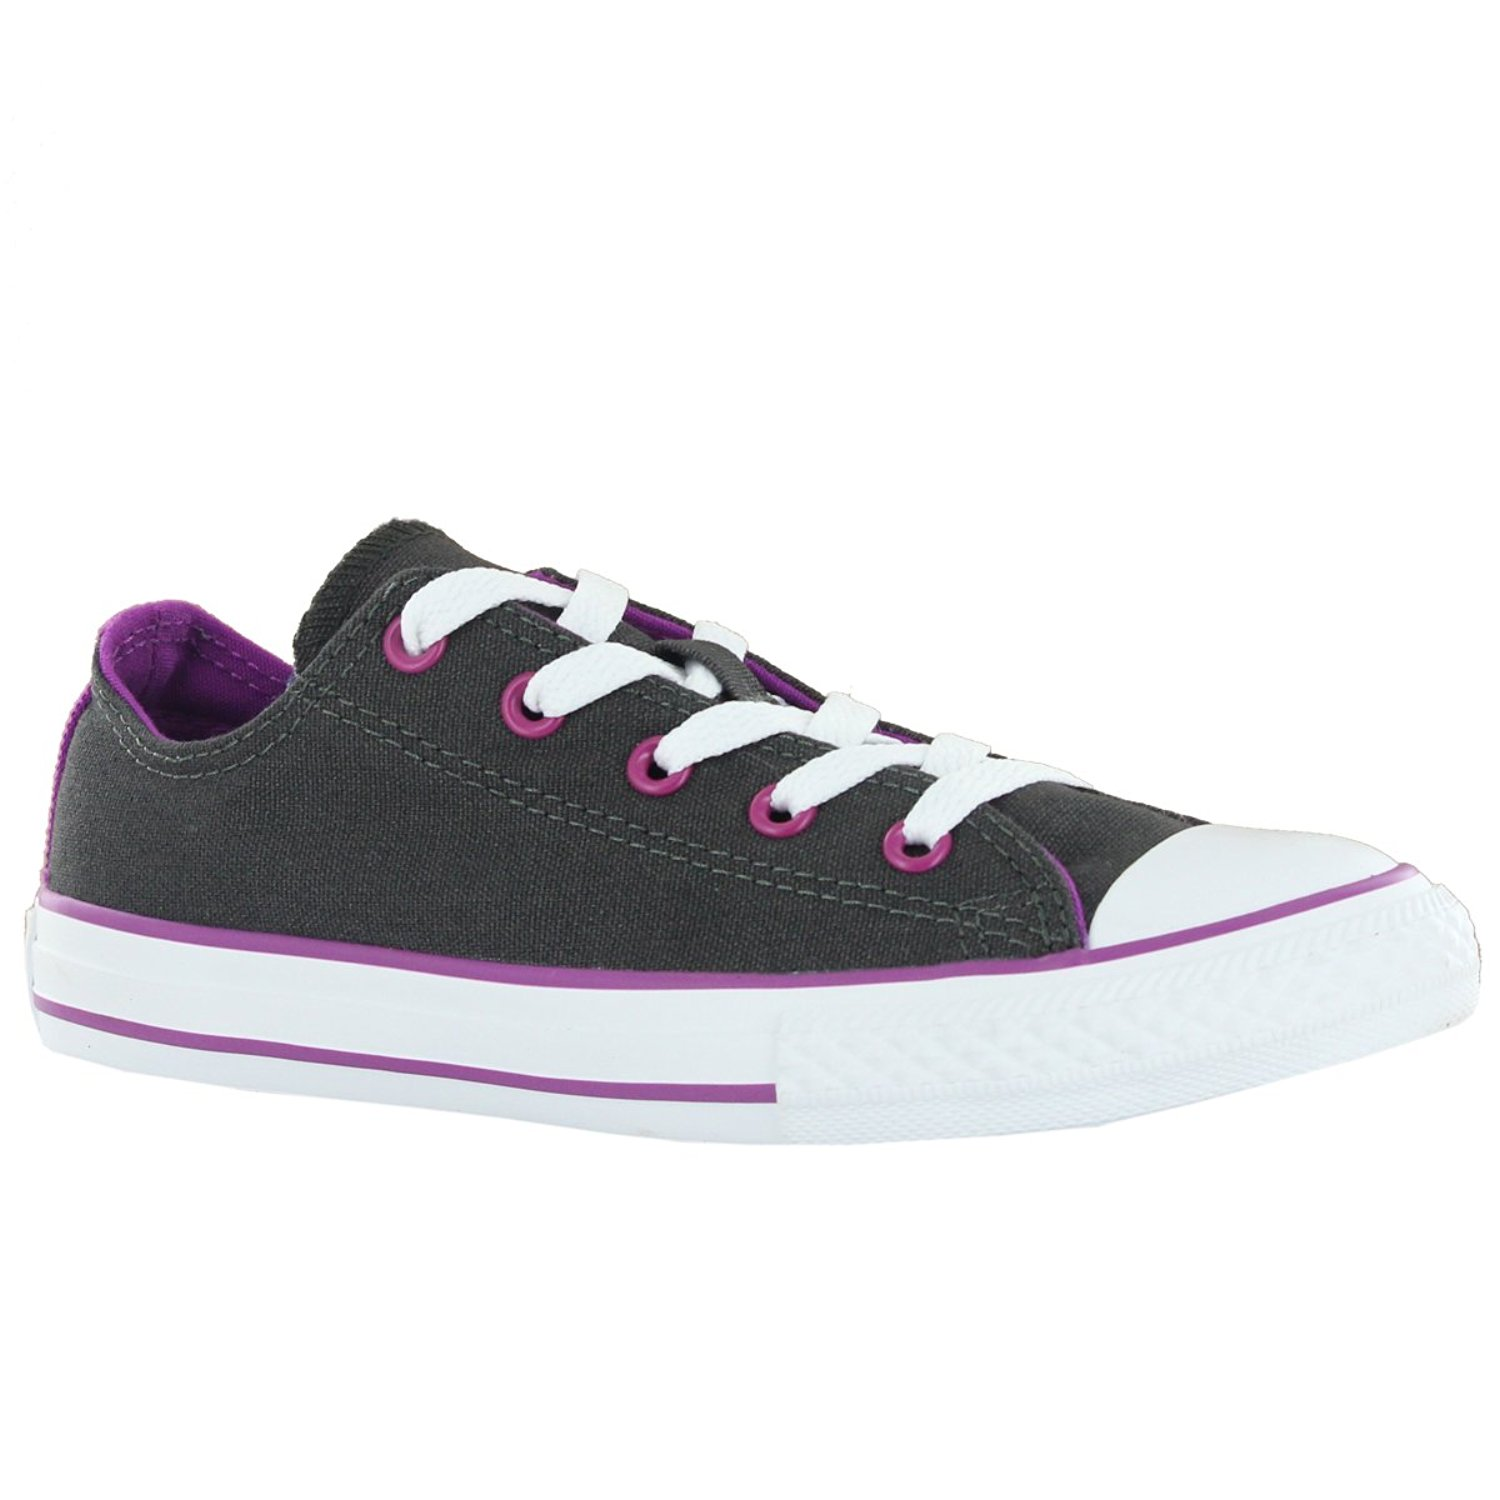 0f066f0e64c1 Buy Converse Chuck Taylor All Star Double Tongue Shoes - Beluga ...